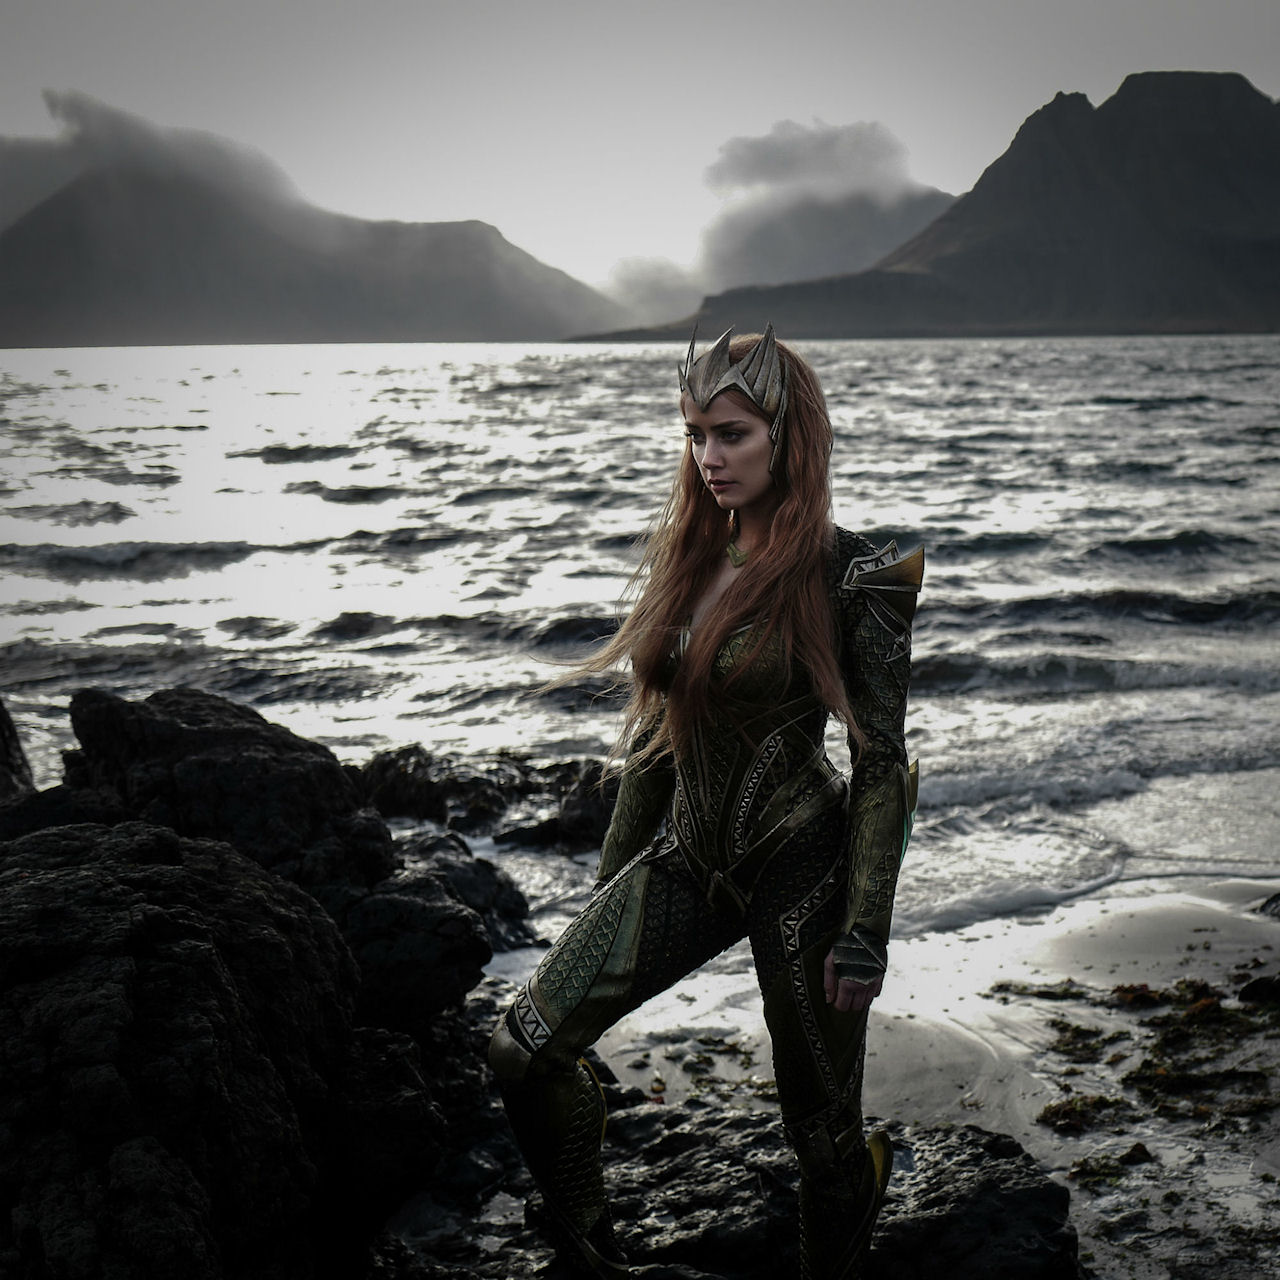 Amber Heard stars as Mera in JUSTICE LEAGUE. (Photo courtesy of Warner Bros. Pictures & DC Comics)